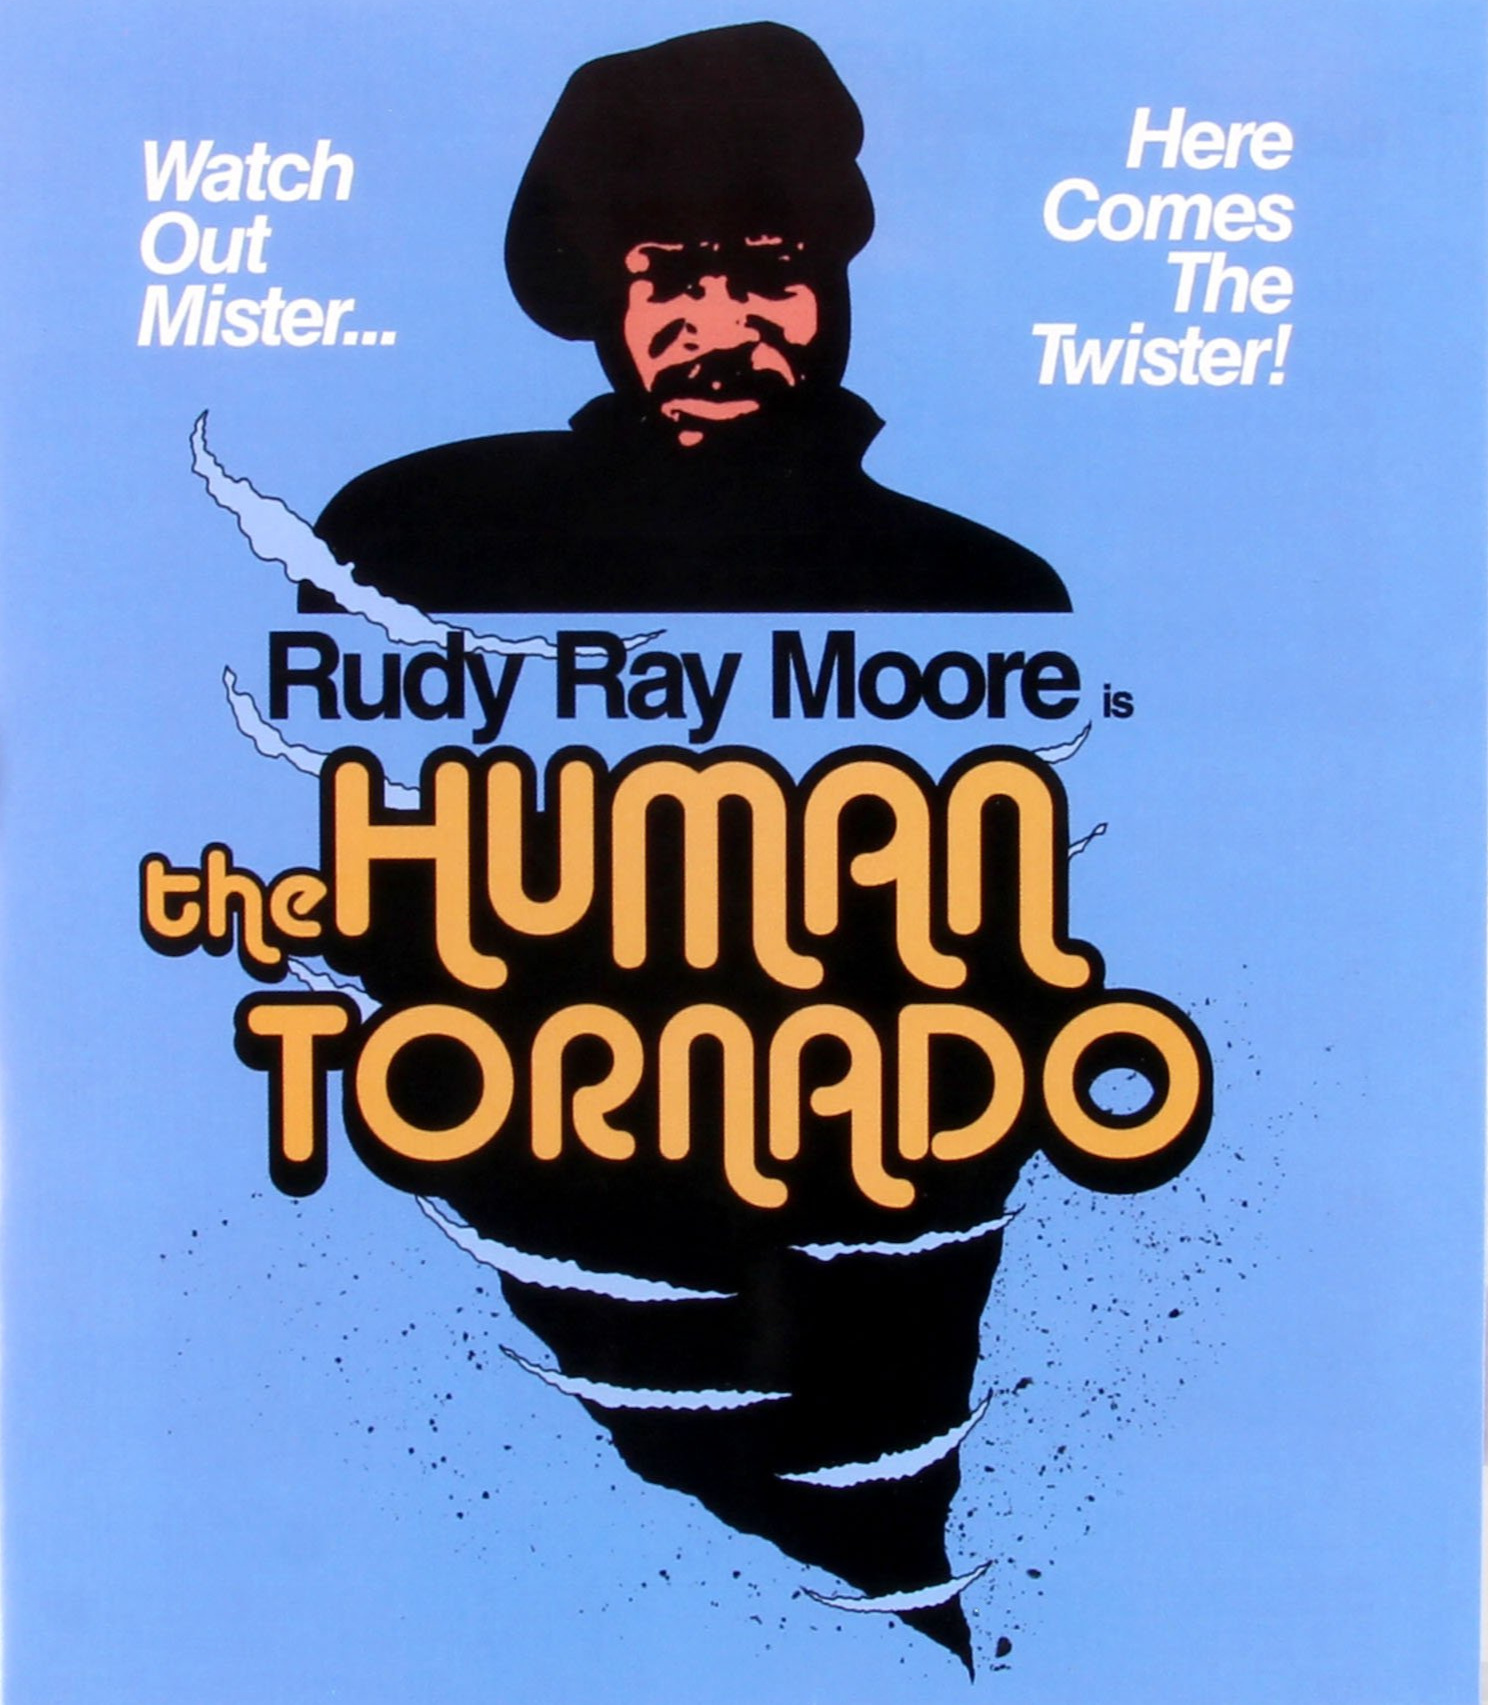 HUMAN TORNADO - (RECOMMENDED PURCHASE)Dolemite (Rudy Ray Moore) is back and badder than ever in THE HUMAN TORNADO! After being run out of town by a racist sheriff, Dolemite returns to LA only to discover that Queen Bee's (Lady Reed) club has been taken over by the mafia. On top of that they have also kidnapped two of Queen Bee's top girls! With the law hot on his tail, Dolemite rounds up the toughest Kung-Fu fighting badasses in Southern California to take on the mob, culminating in one of the craziest surprise endings in blaxploitation film history!Wilder and more over the top than its predecessor, THE HUMAN TORNADO is a non-stop assault on the senses, combining comedy, action, horror, and jawdropping weirdness, featuring supporting performances from Ernie Hudson, Jimmy Lynch and world karate champion Howard Jackson. Vinegar Syndrome proudly presents THE HUMAN TORNADO on Blu-ray, restored from original 35mm vault elements.Directed by: Cliff RoquemoreActors: Rudy Ray Moore, Ernie Hudson, Jimmy Lynch, Lady Reed, Jerry Jones1976 / 96 minutes / Color / 1.85:1-Region free Blu-ray and DVD combo pack-All extras on both formats-Scanned and restored in 2k from 35mm vault elements-